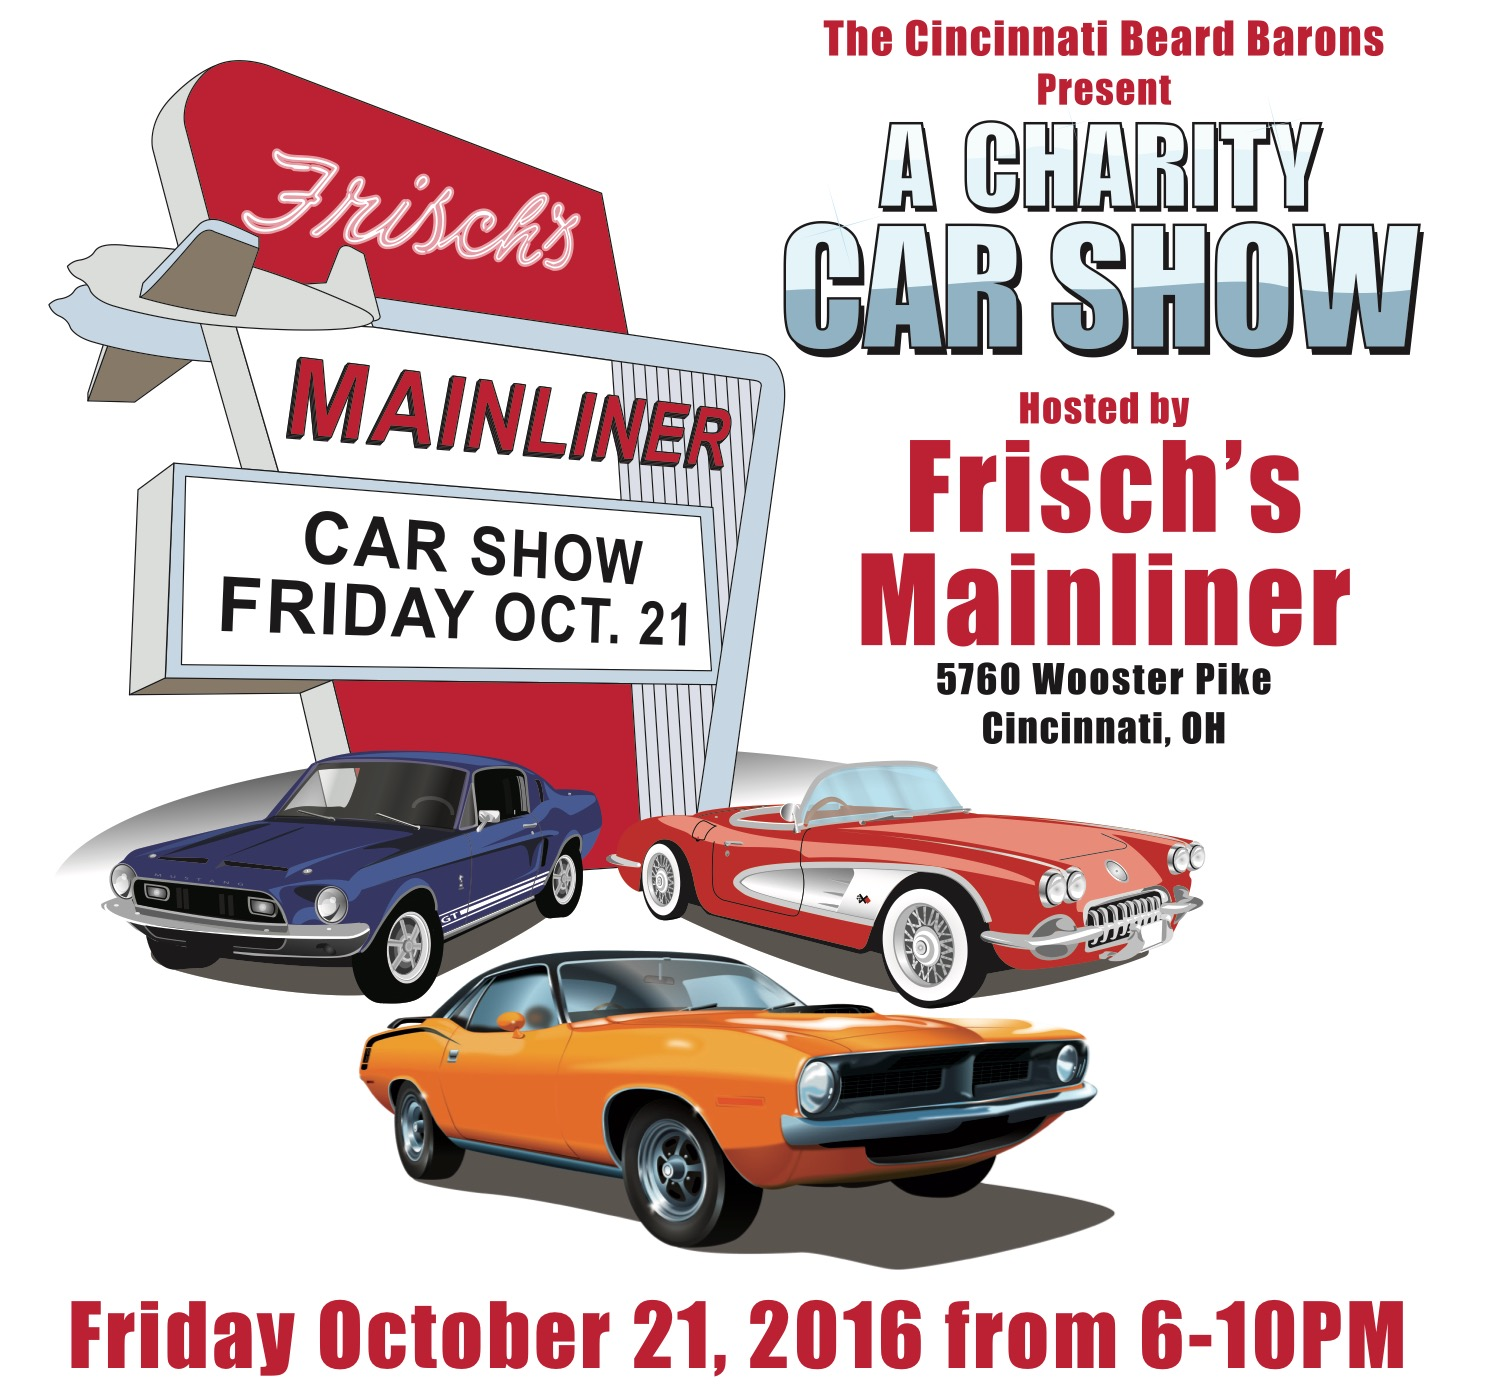 Charity Car Show At The Mainliner - Car show in cincinnati this weekend